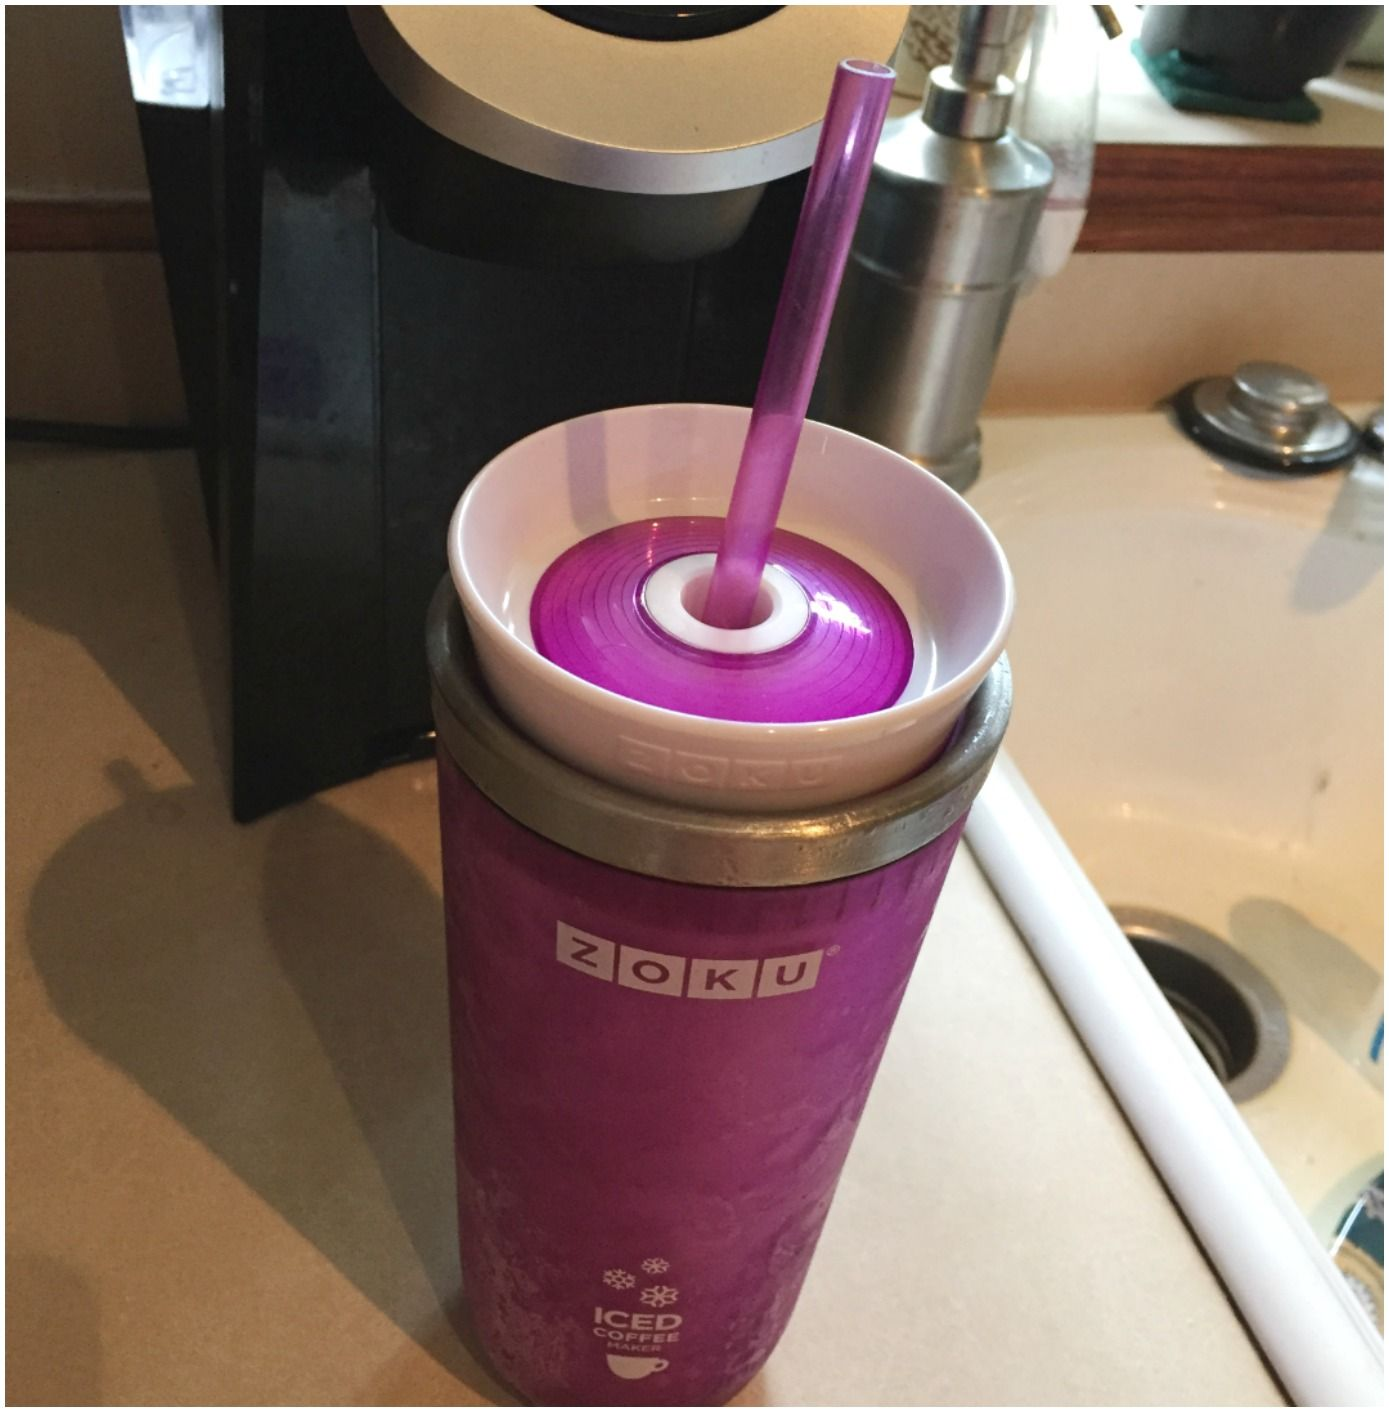 All you have to do is put the iced coffee maker in the freezer. And then pour piping hot coffee in. In literally 2 minutes you have freezing cold coffee, full strength. AMAZING. I seriously cannot say enough. It really does turn it cold right away - it's absolutely a must have for any coffee drinker.